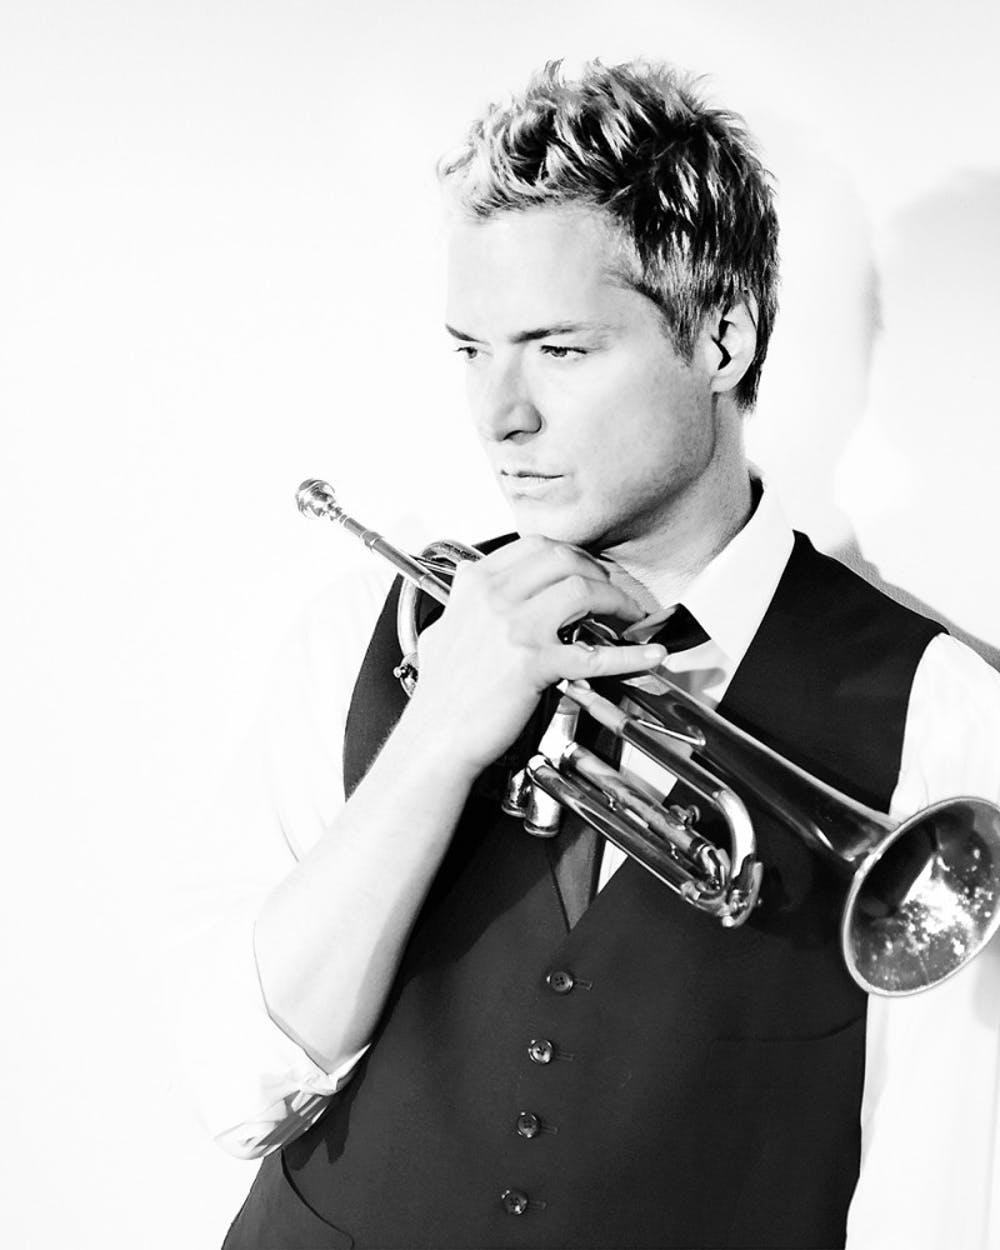 Chris Botti, former IU student and Grammy award-winner, will return for a special homecoming weekend performance at the IU Auditorium. The trumpet player will perform his jazz pieces in addition to conduct educational sessions with Jacobs School of Music students during his stay in Bloomington.